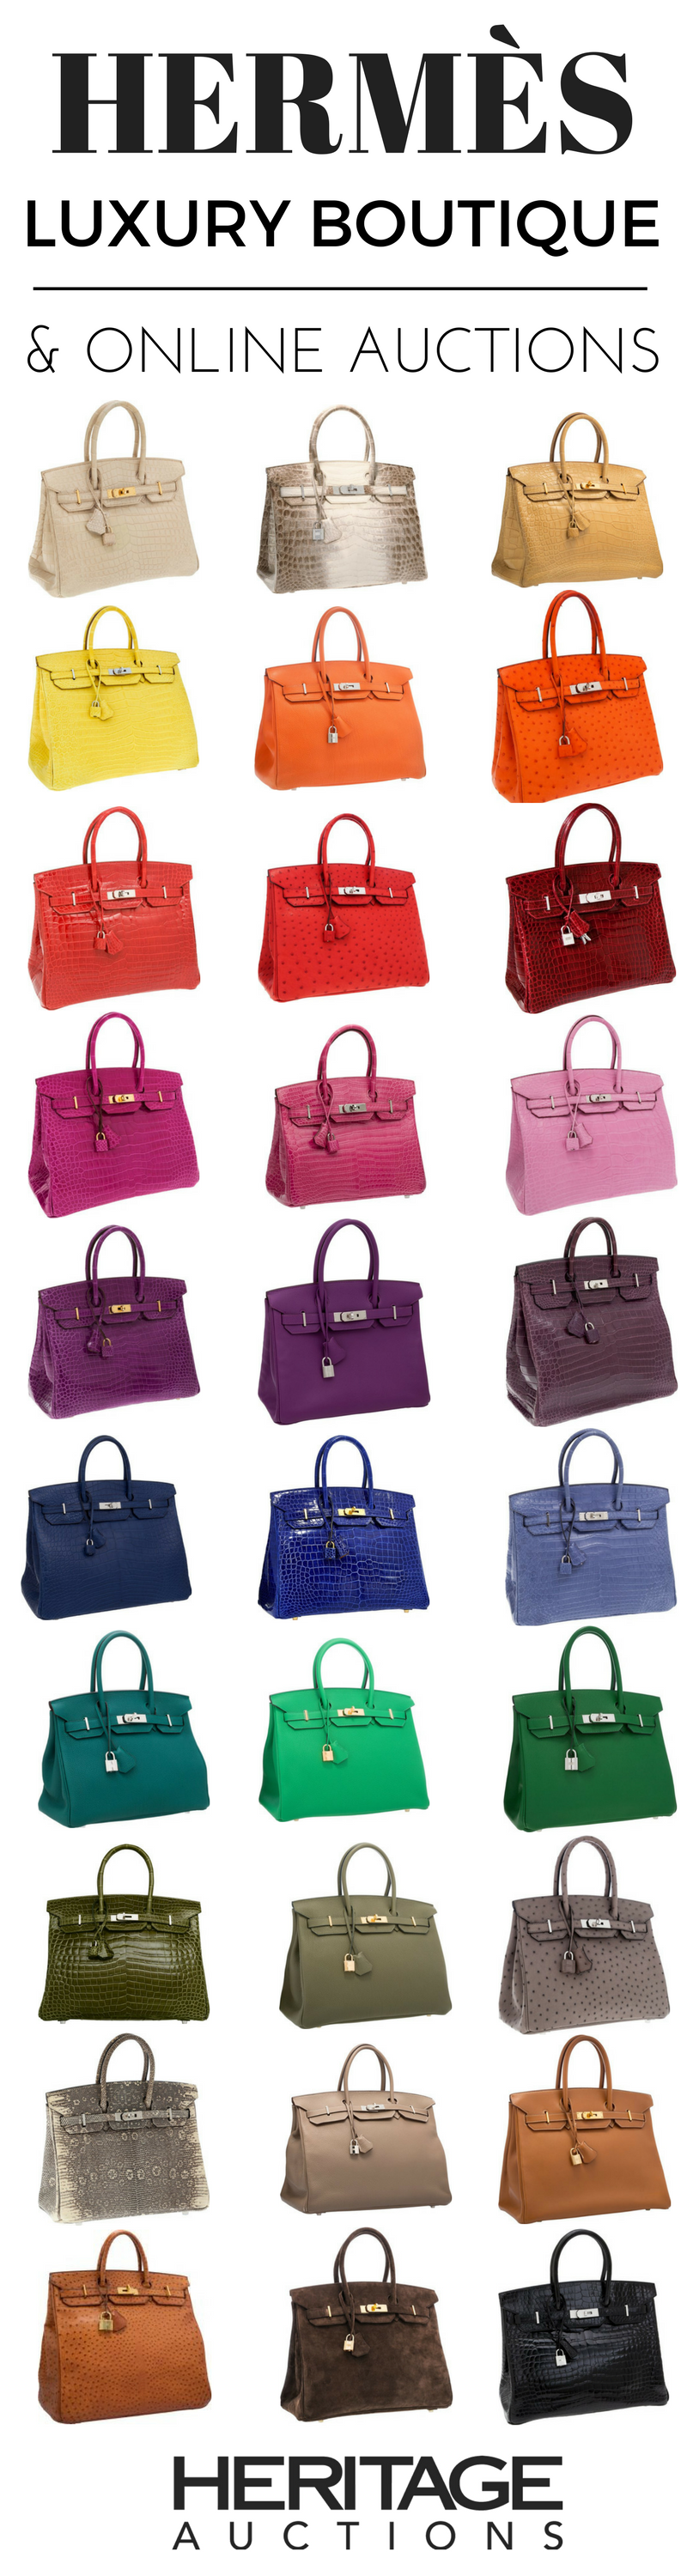 1a5c687c6521 ... cheapest swarovski crystal hermès birkin bags in all colors available  online hermes birkins berkins 9e421 98c3e